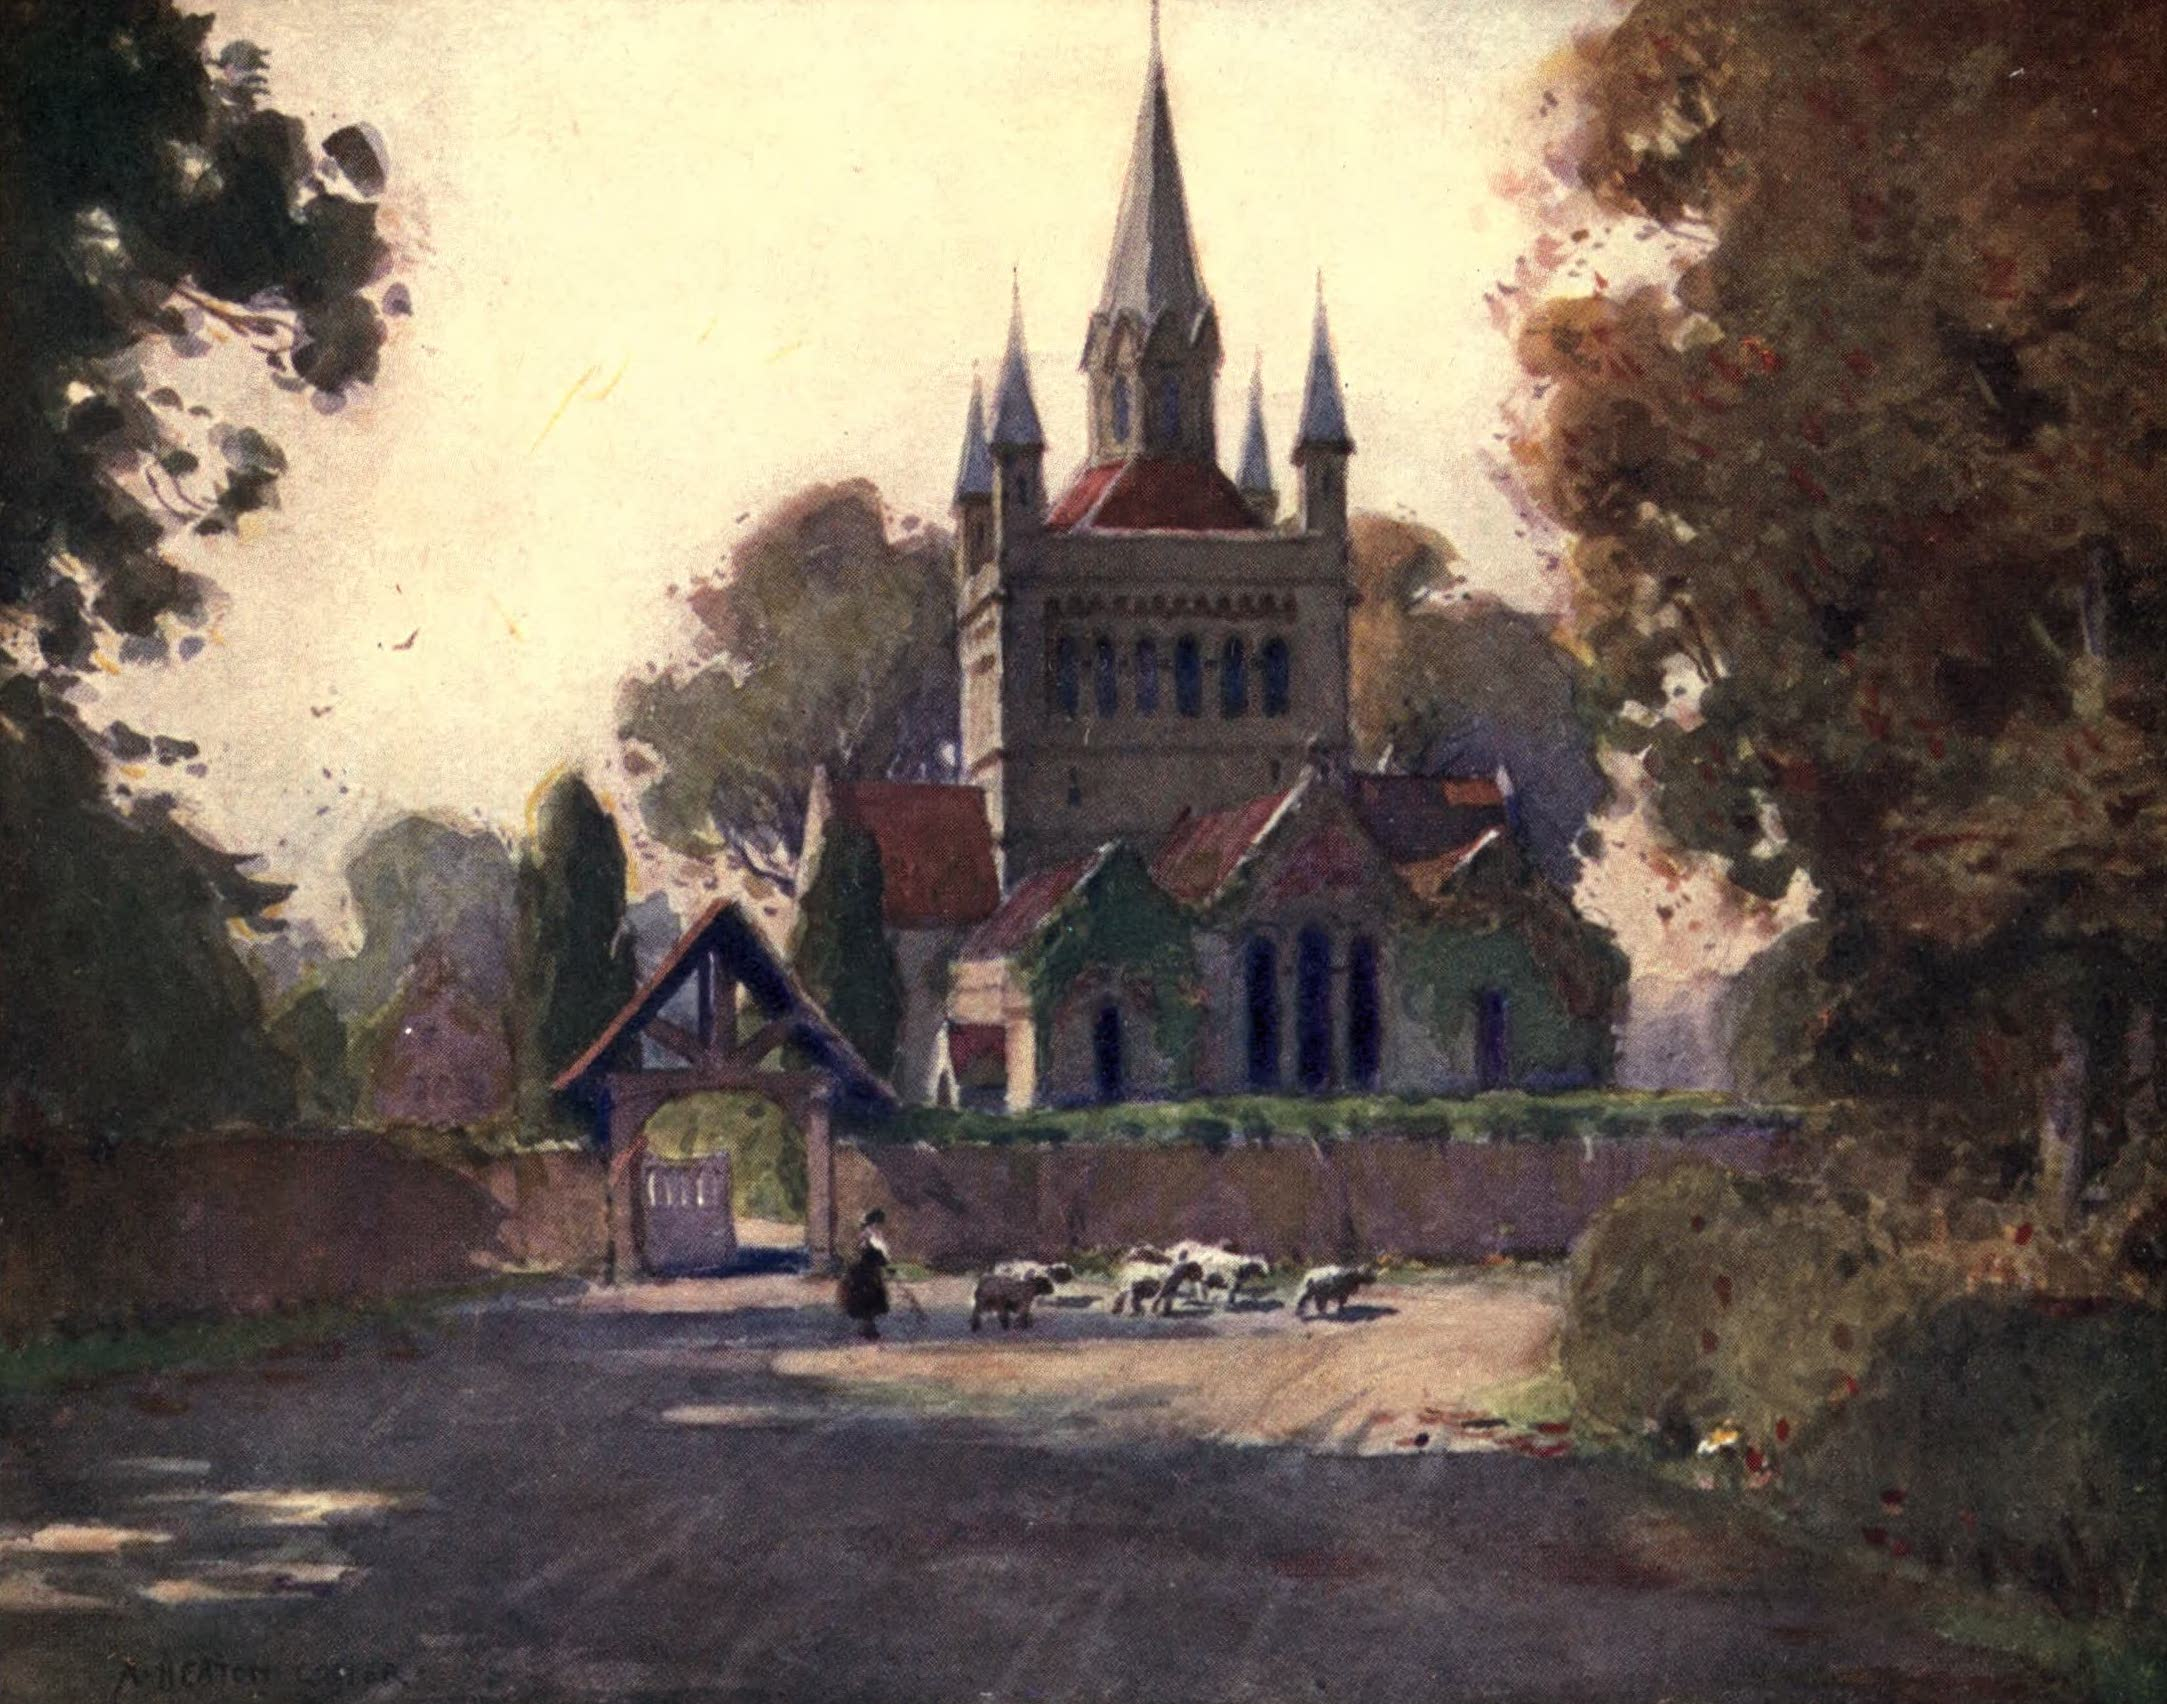 Isle of Wight Painted and Described - Whippingham Church (1908)